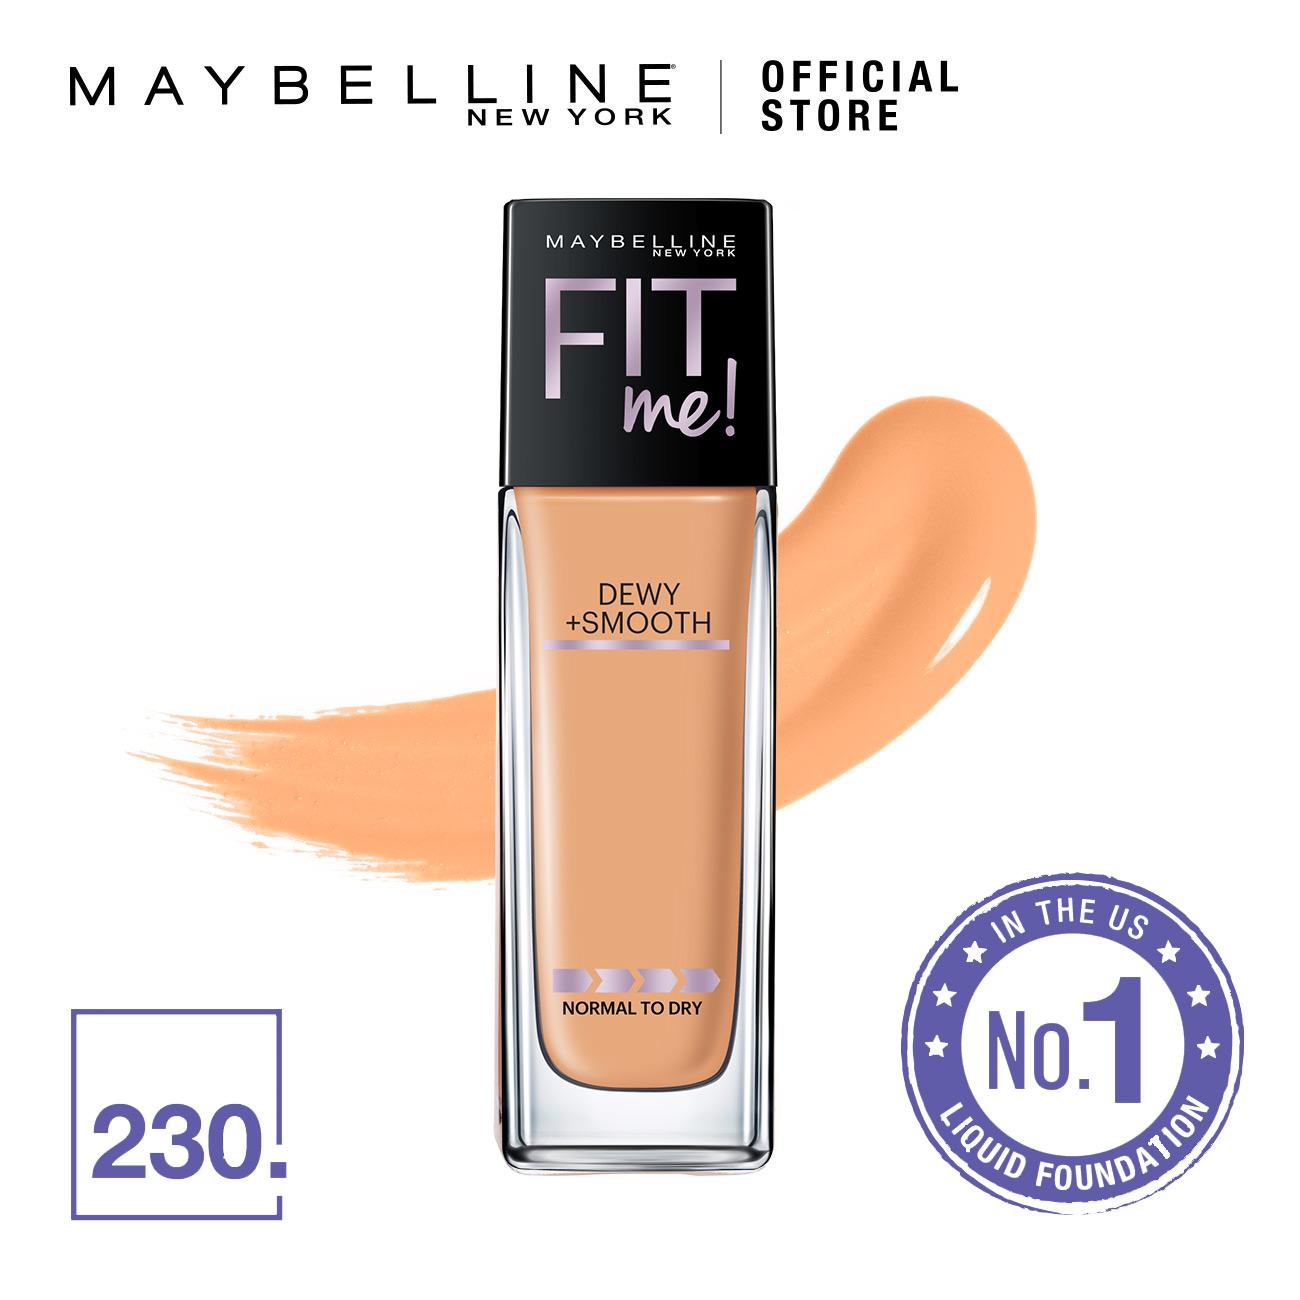 Maybelline Fit Me Dewy + Smooth Foundation - 230 Natural Buff